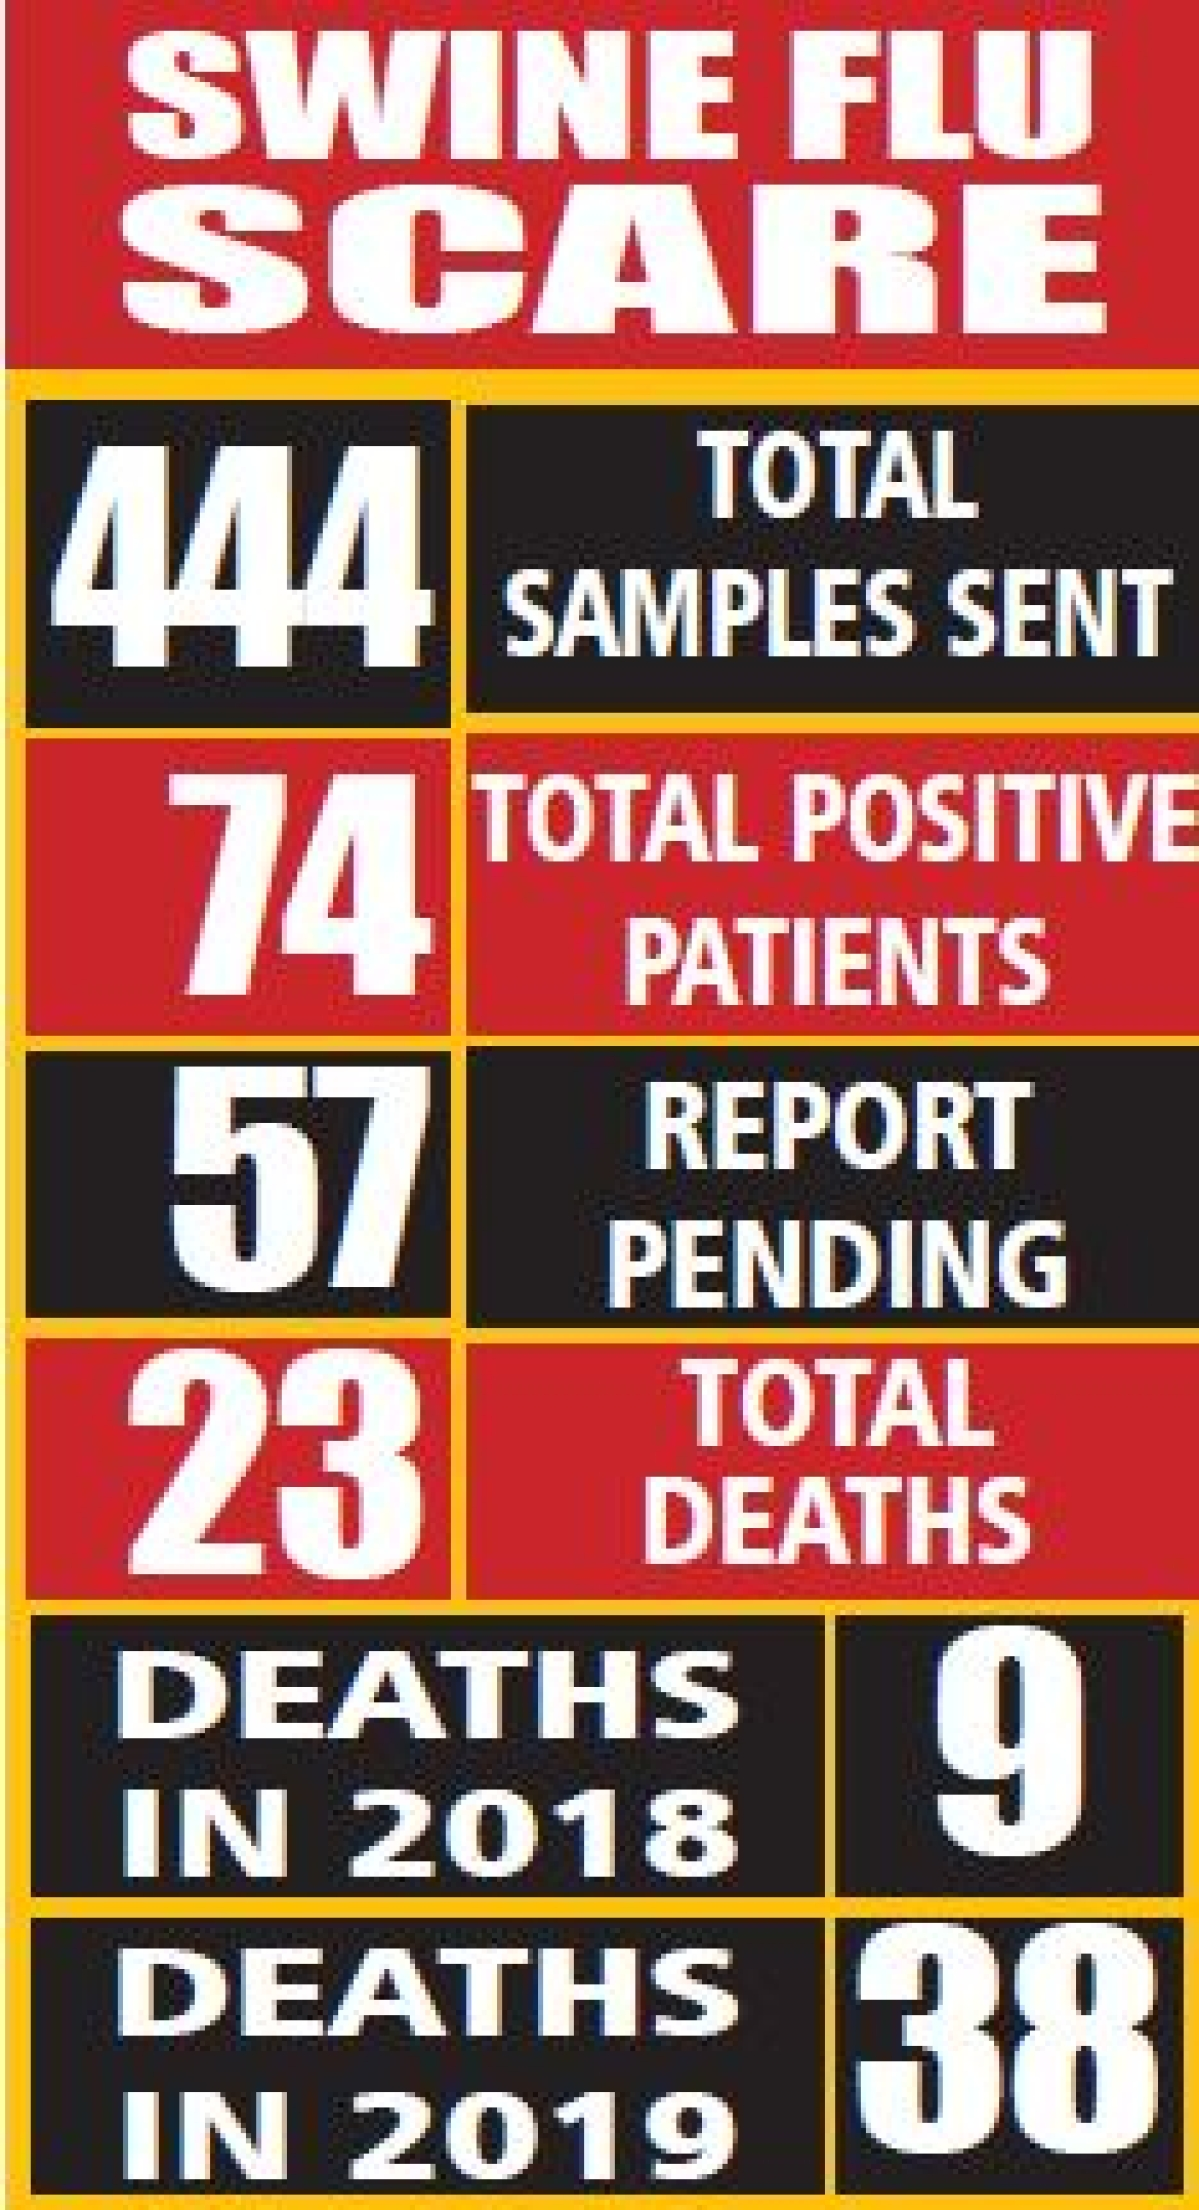 Indore: Swine flu 'sting' fails to prompt government action